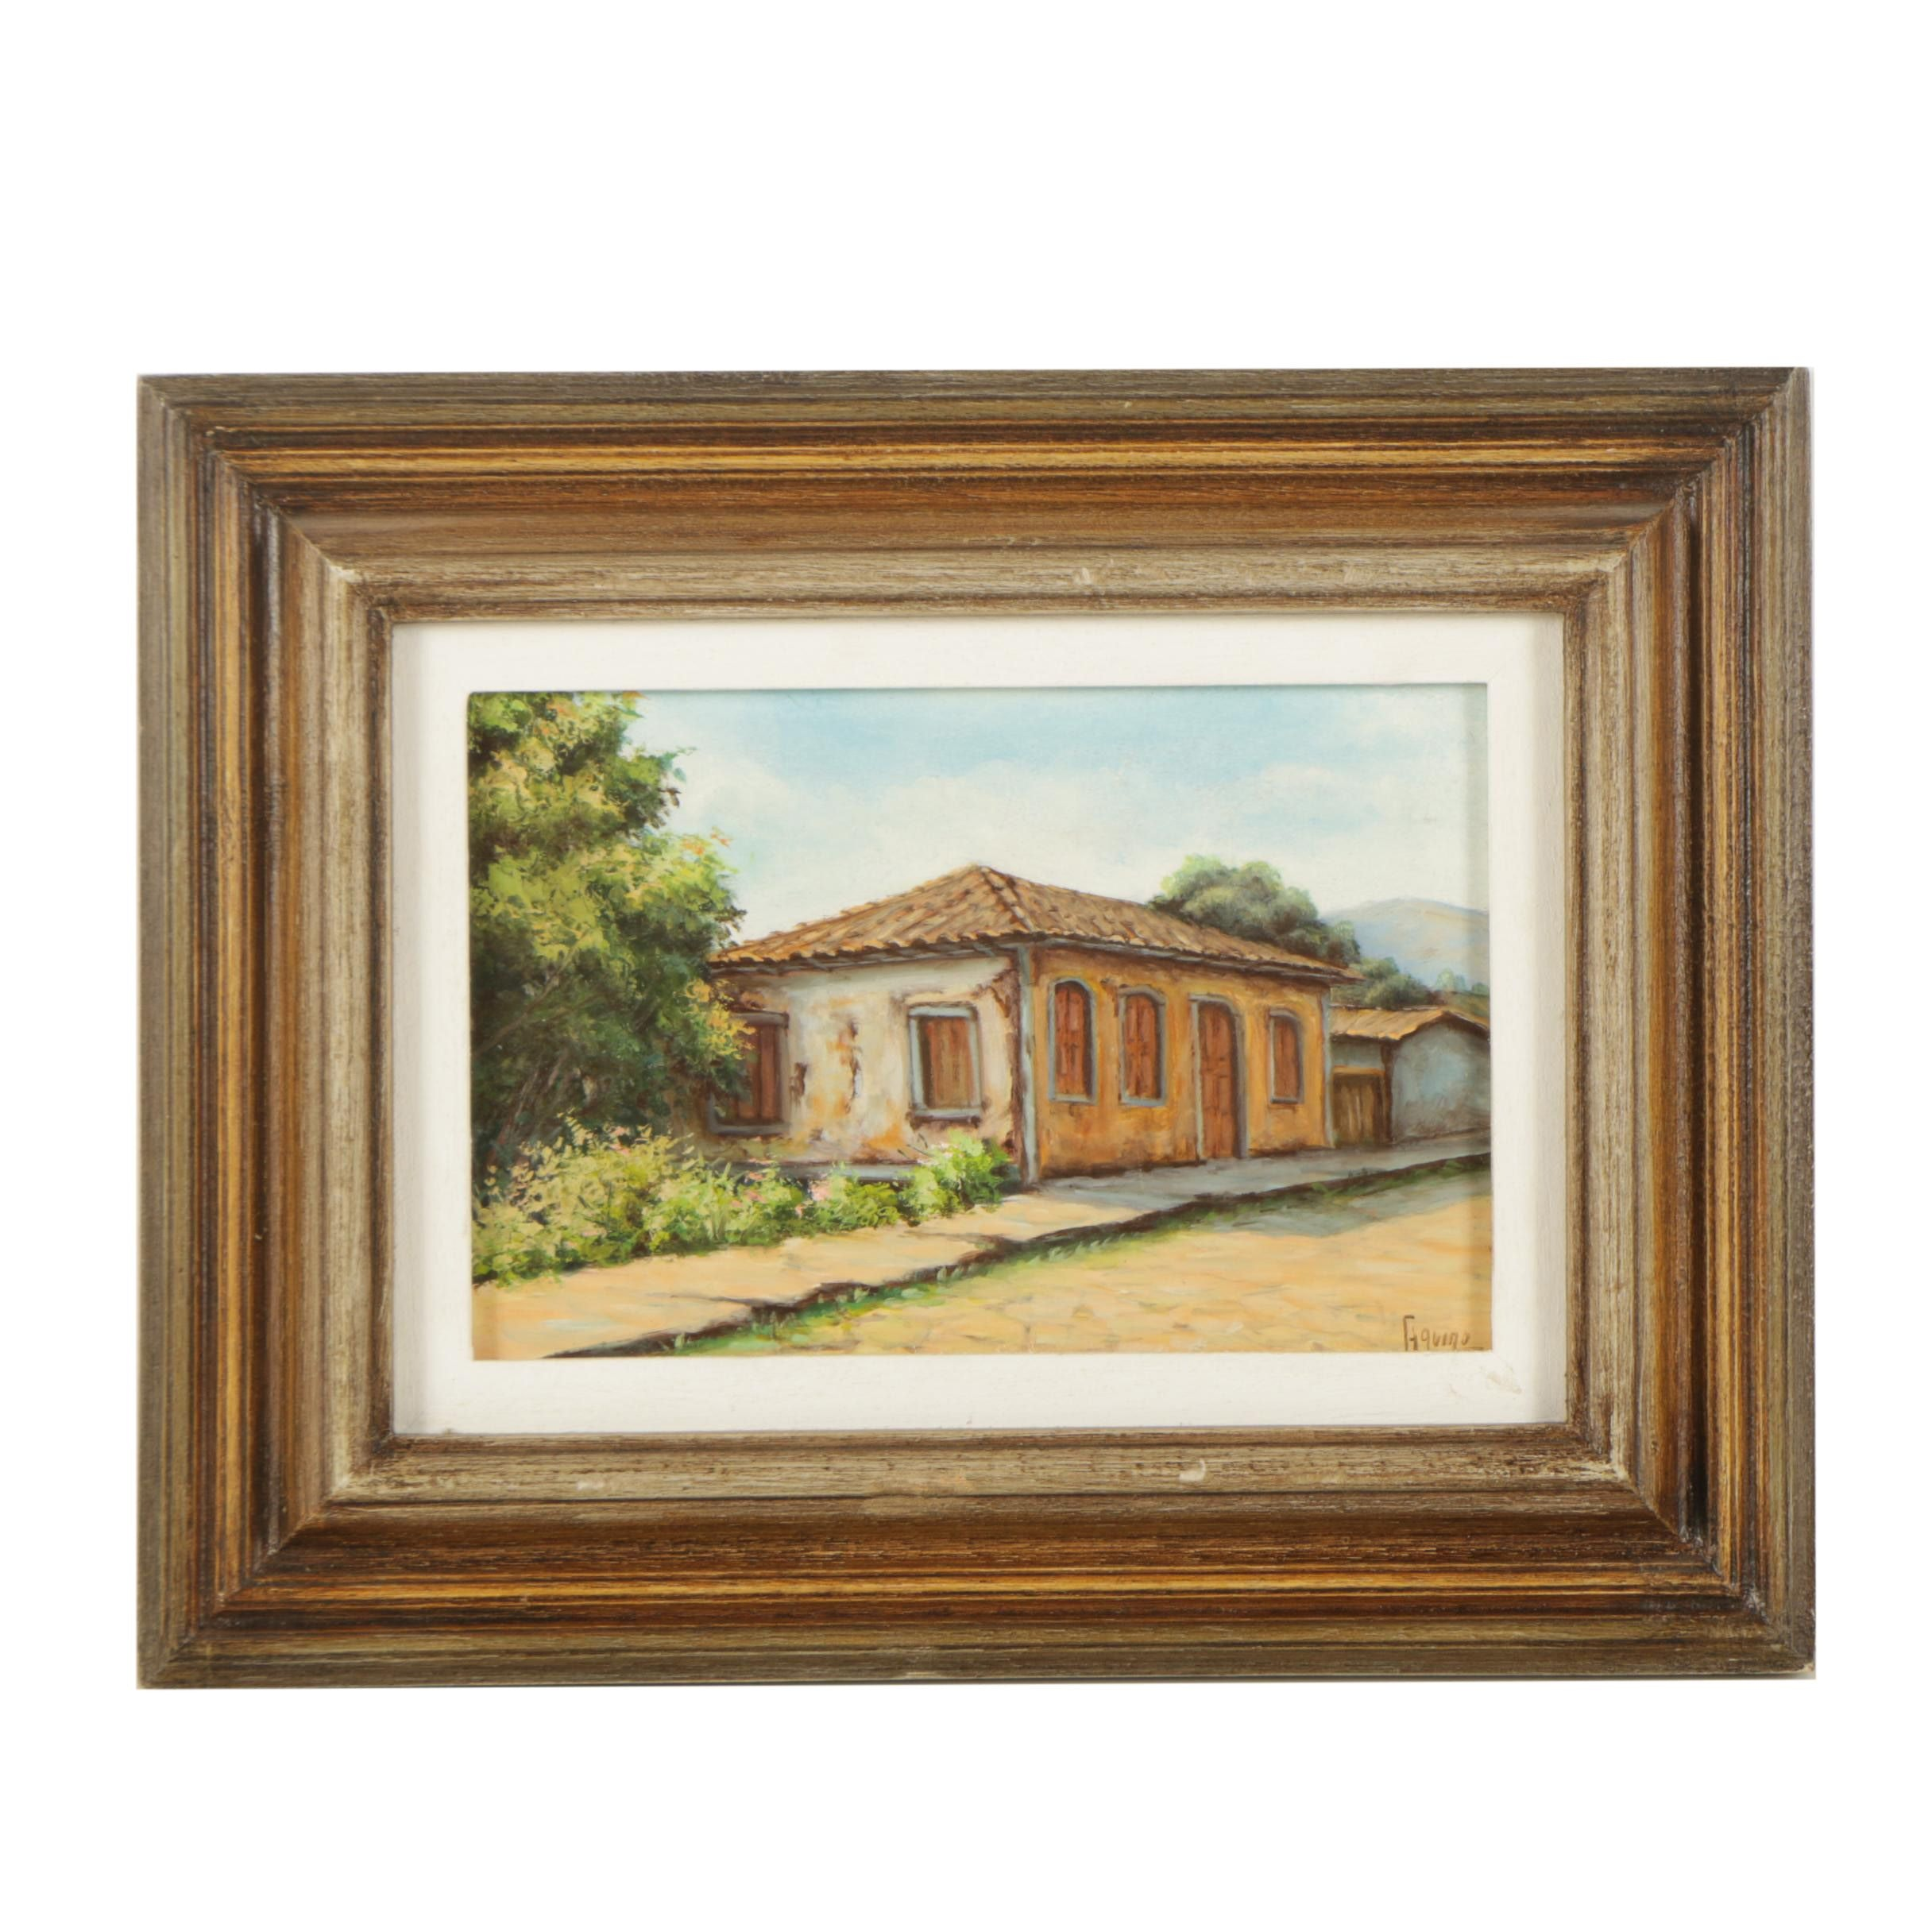 Aquino Oil Painting of a Village